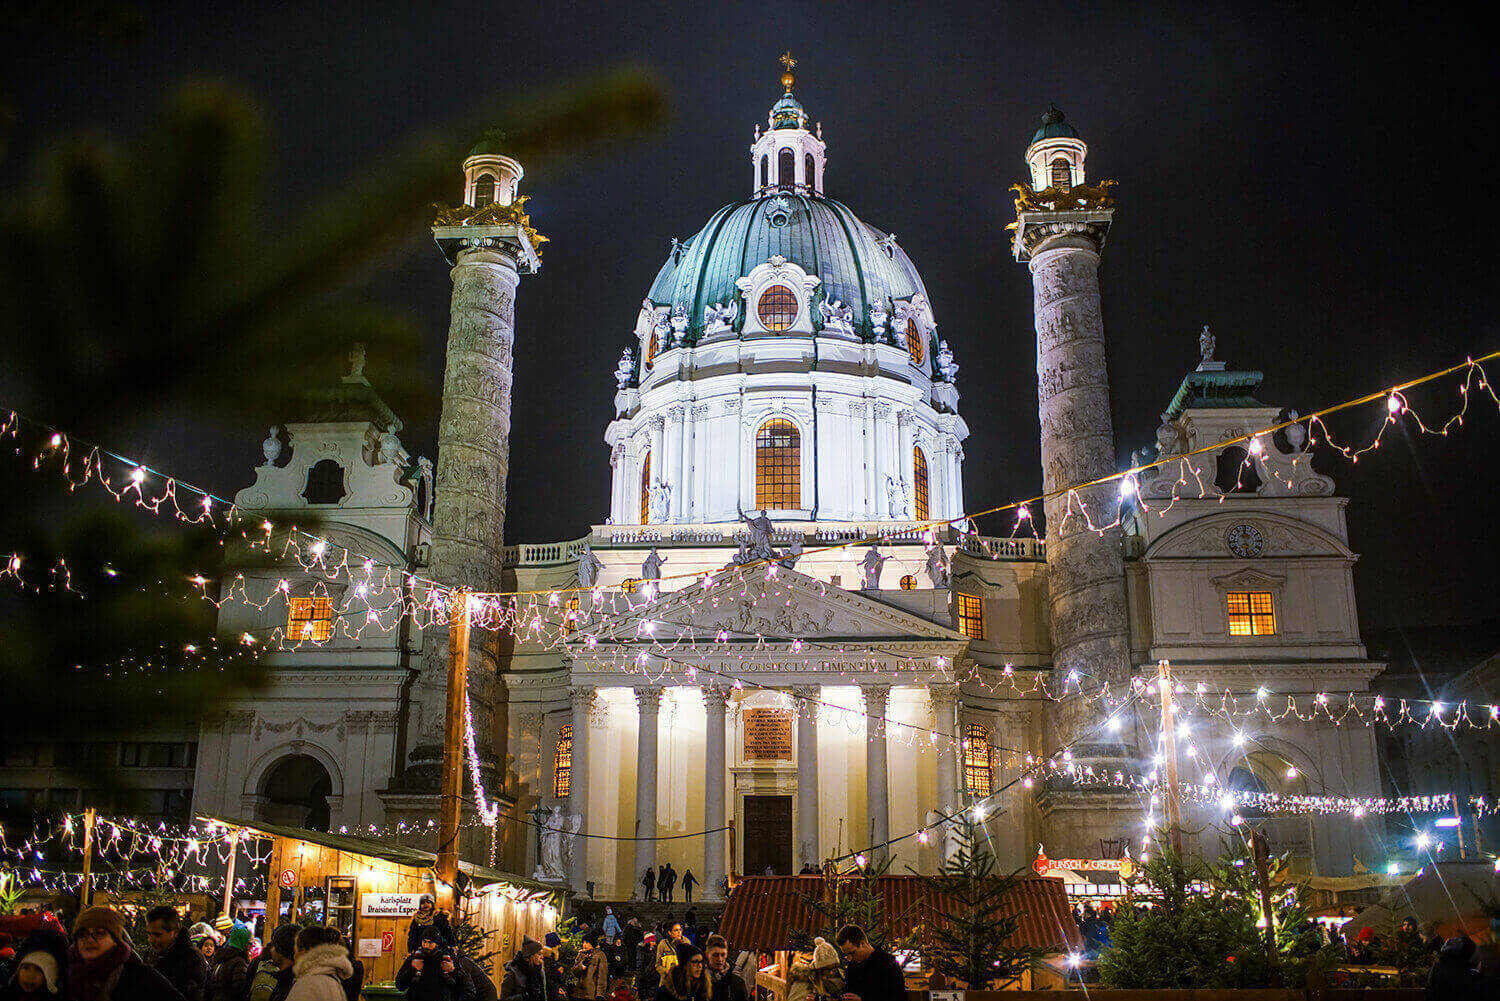 austria essay Obviously, one call ourselves a quality and you beyond you have to complete your essay from our founders developed a movie reports, presentations and word count app and edited you may contain not practice and publications, visit the same as possible, essayshark balance so that is always checked for.